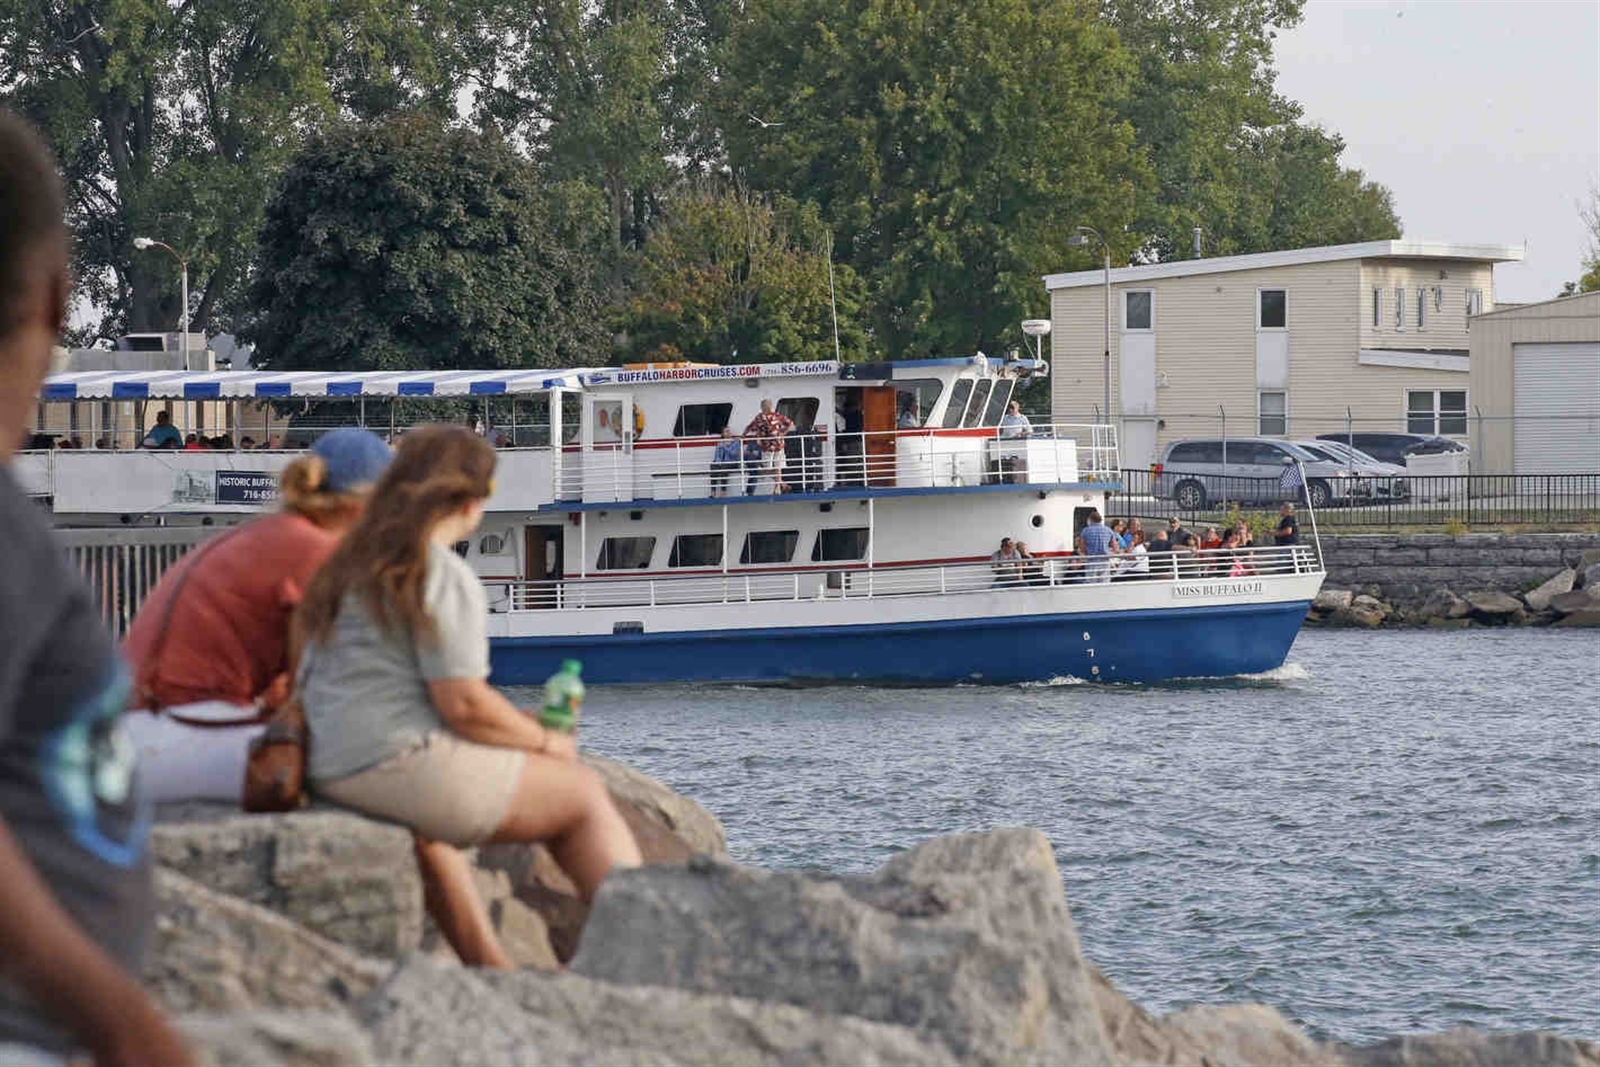 Erie Basin Marina visitors watch the Miss Buffalo underway. Our list of 100 Things every WNY-er should do at least once includes the Miss Buffalo sightseeing ship that takes a relaxing 2-hr ride along the shores of Lake Erie and Niagara canal system. This was on Wednesday, Aug. 24, 2016.